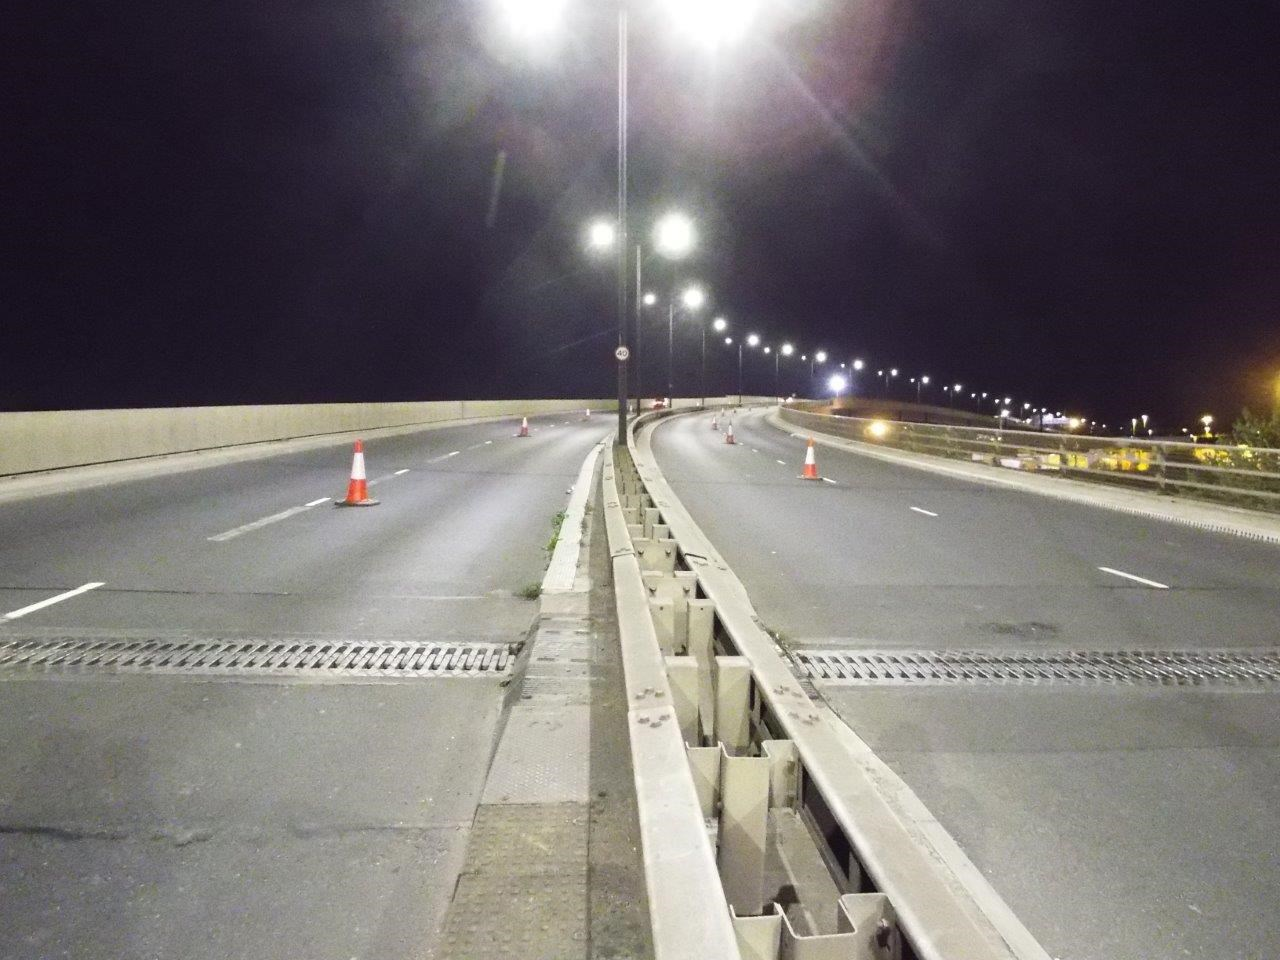 The joints of St. George's Bridge at night.